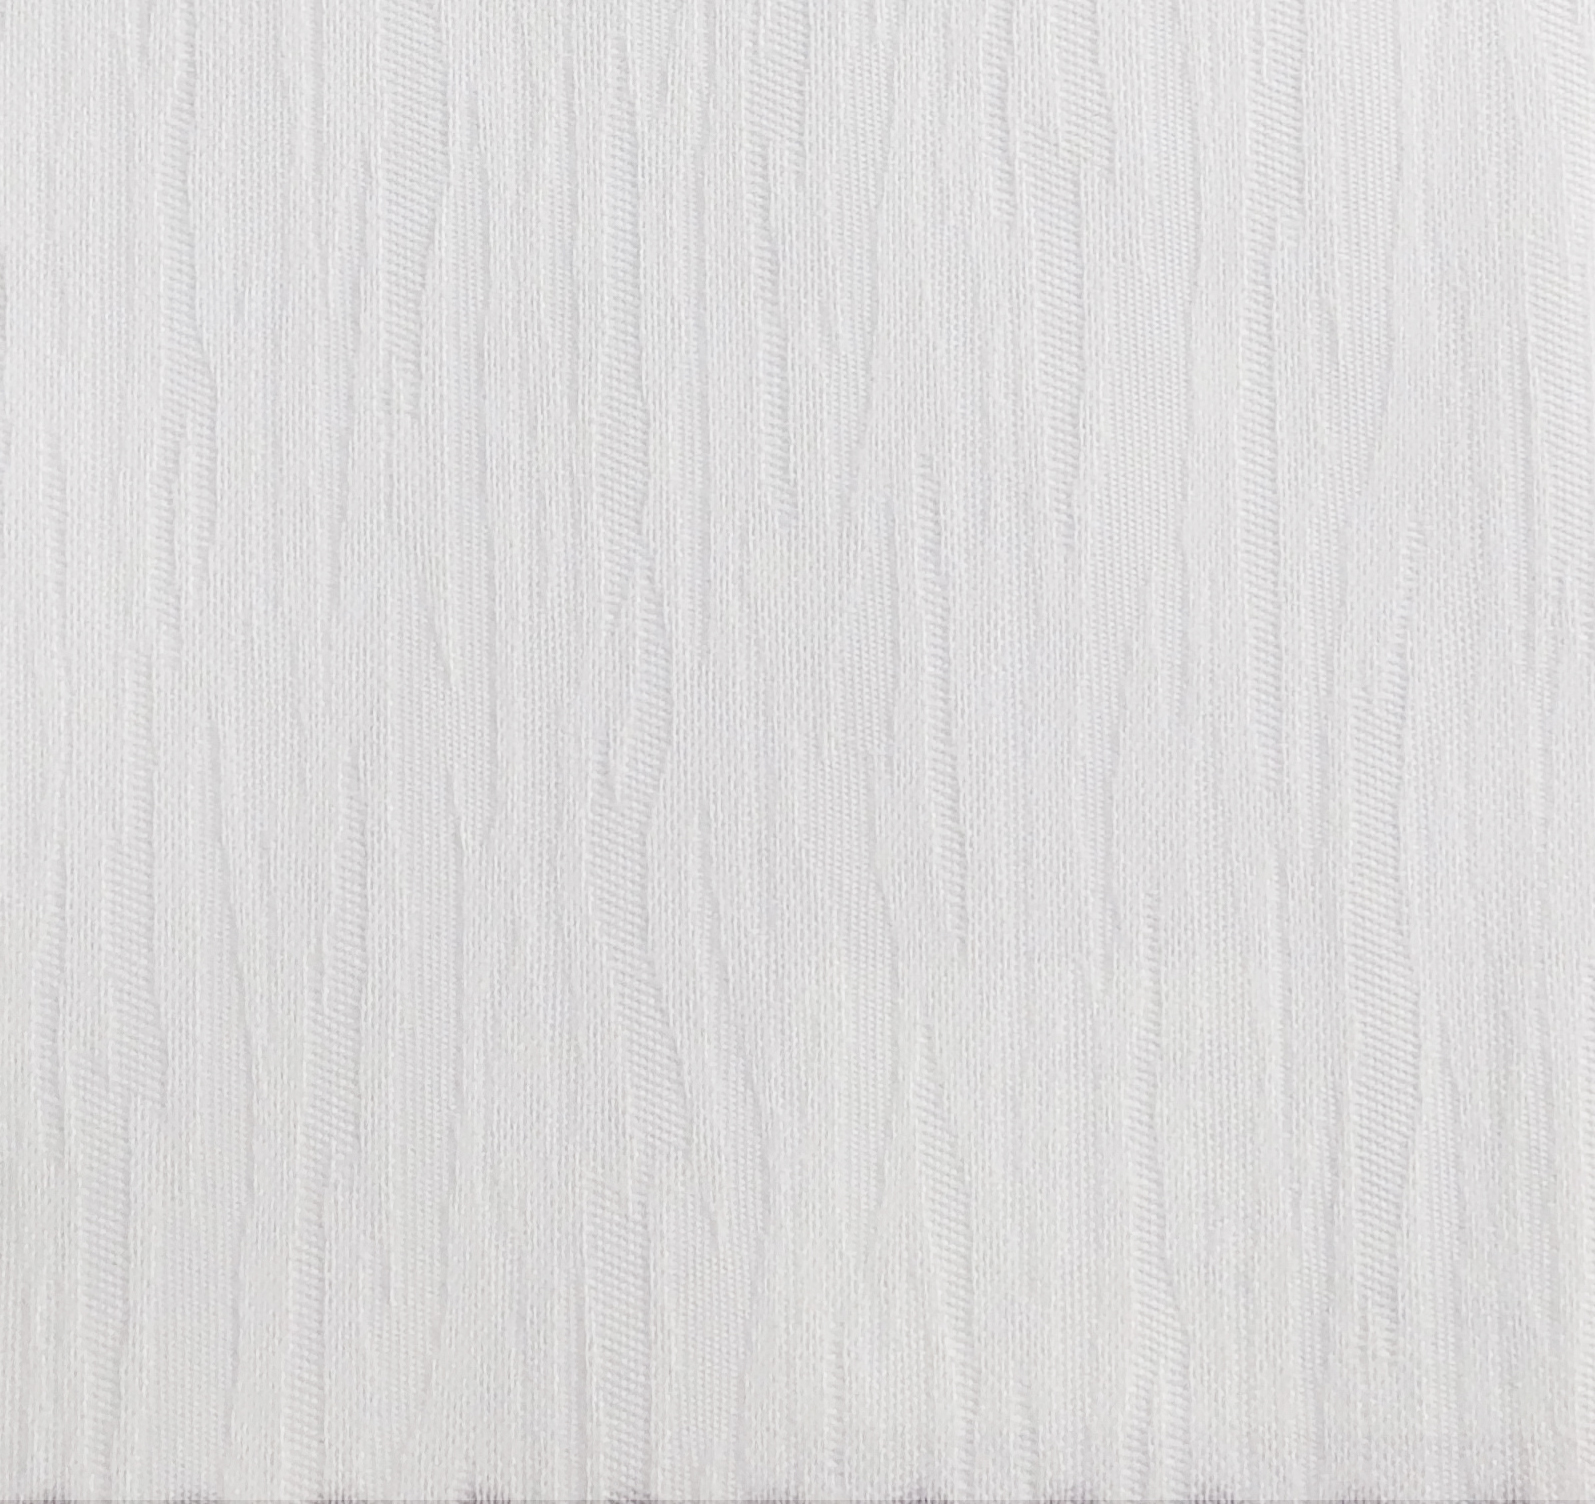 Ventura White Blind sample fabric